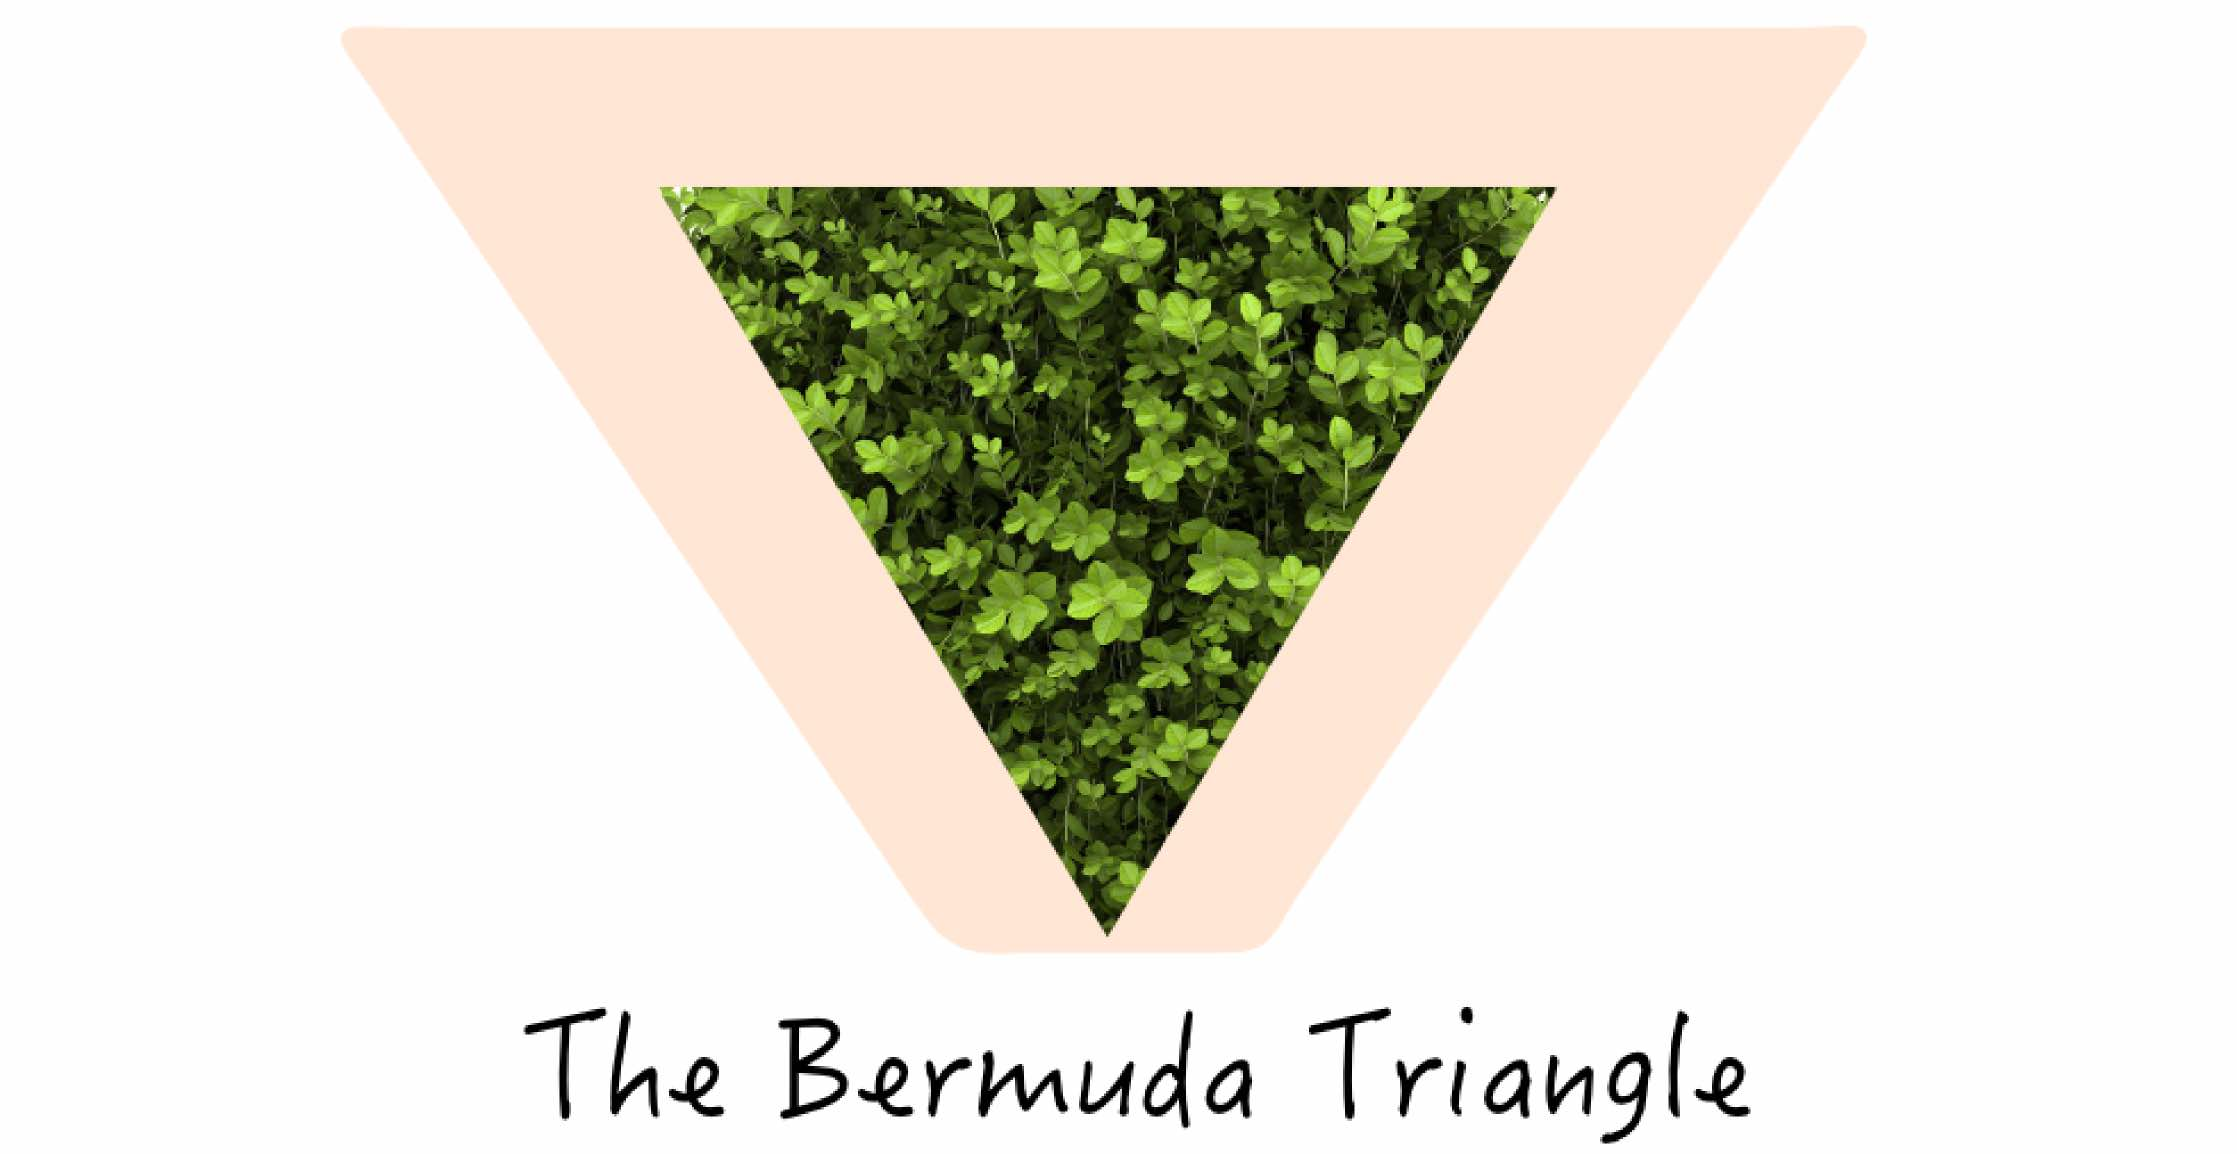 Pubic Hair Styles The Bermuda Triangle